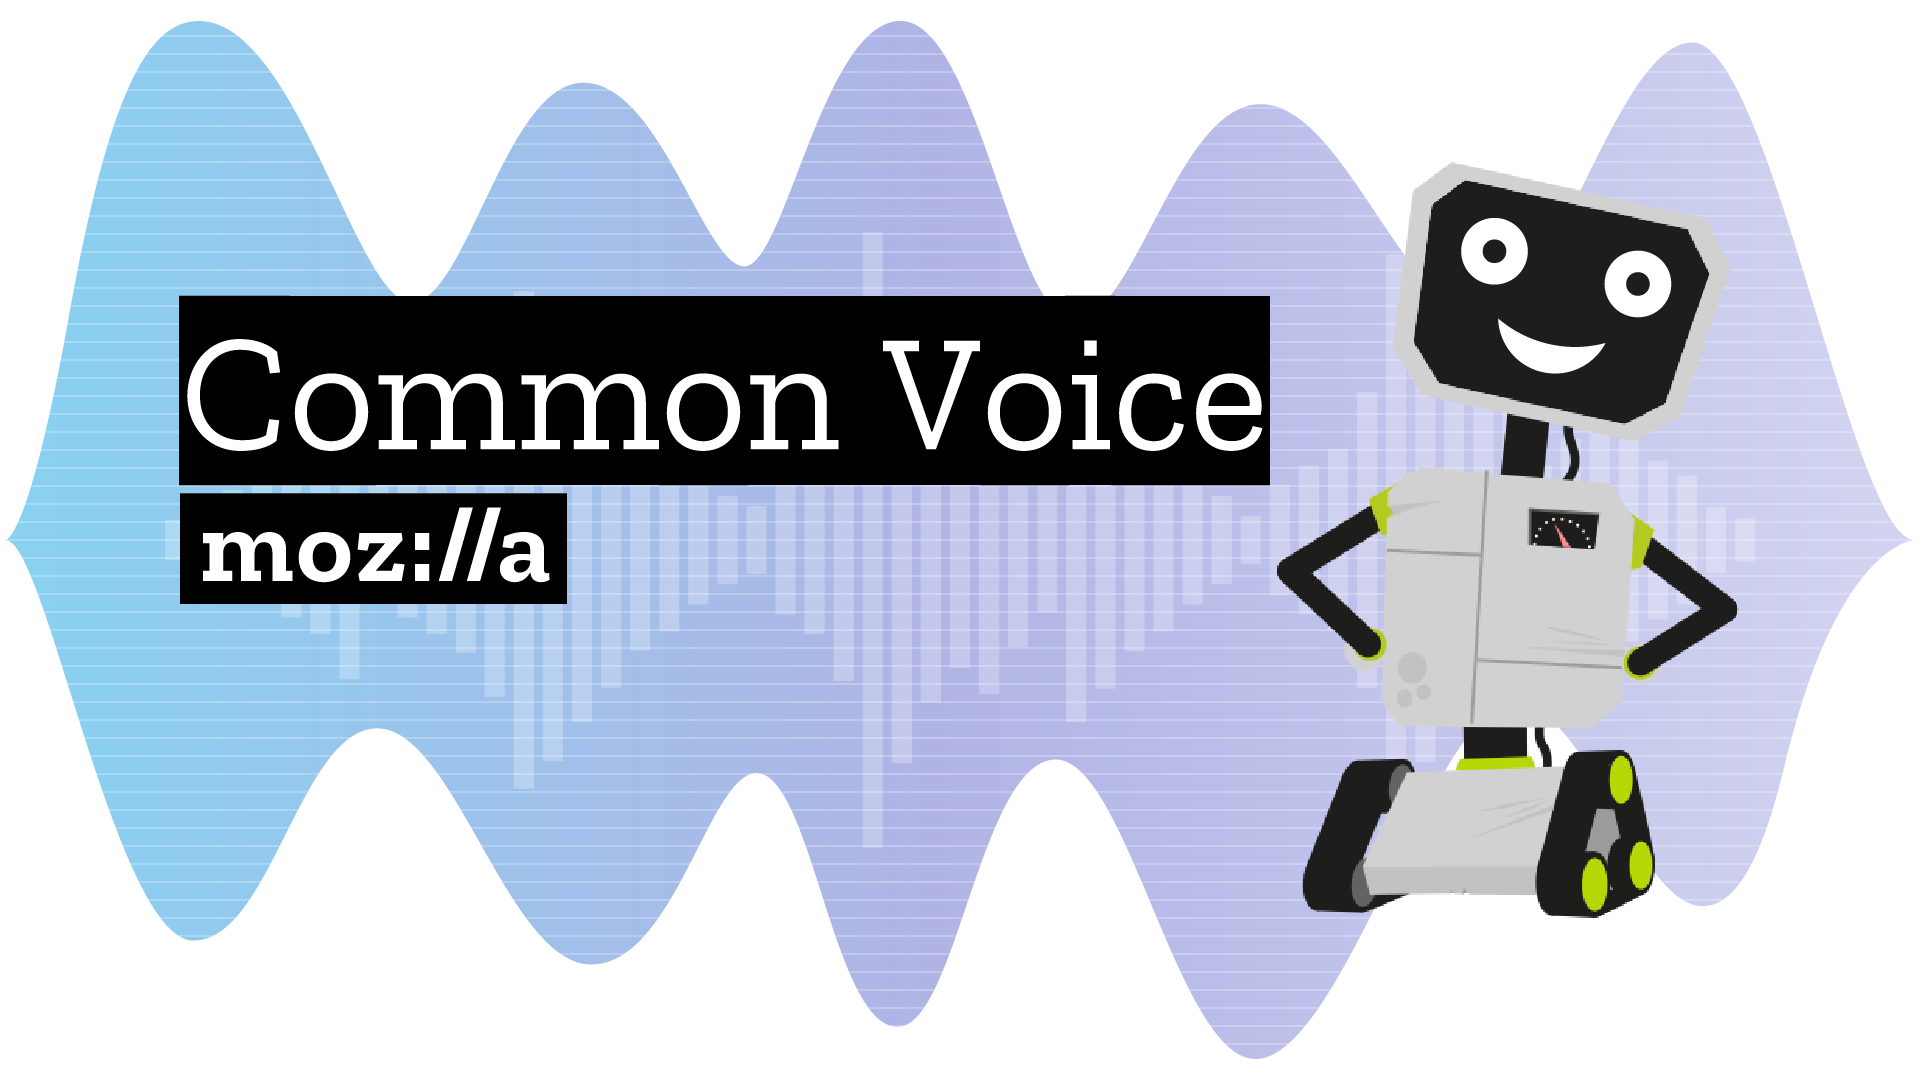 How Could You Use a Speech Interface? - The Mozilla Blog